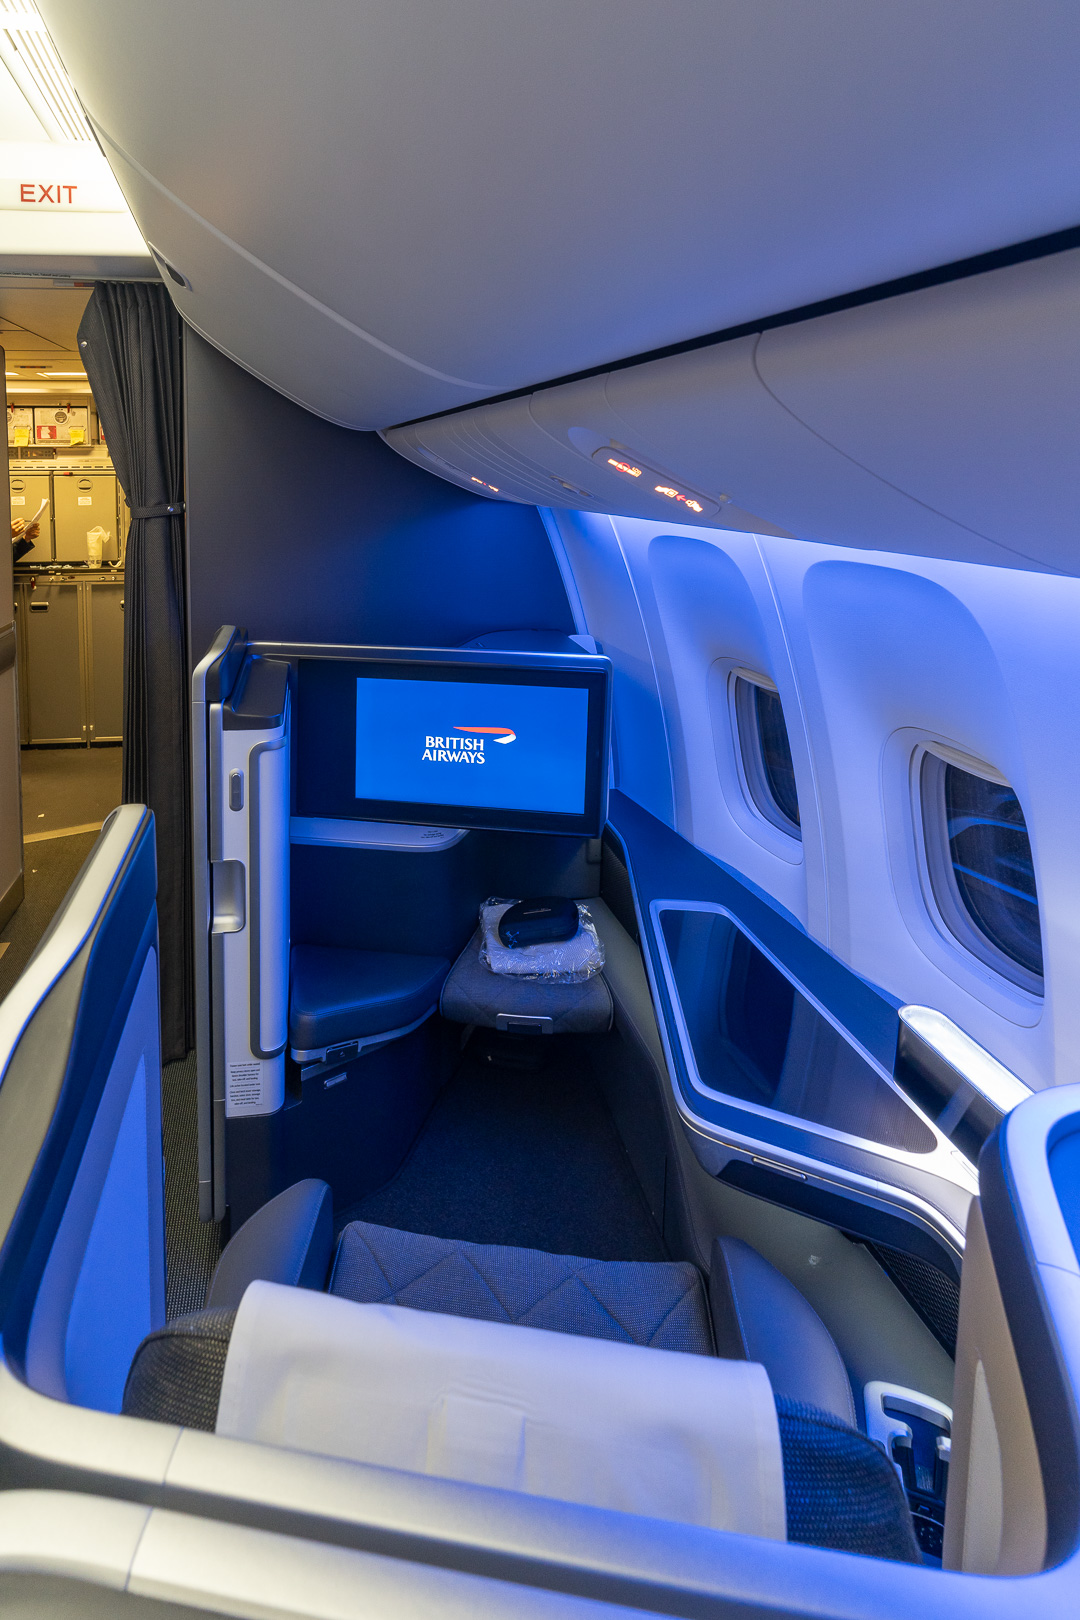 BA 77WN F 8 - REVIEW - British Airways : First Class Suites - B777 - London (LHR) to Malé (MLE) - [COVID-era]